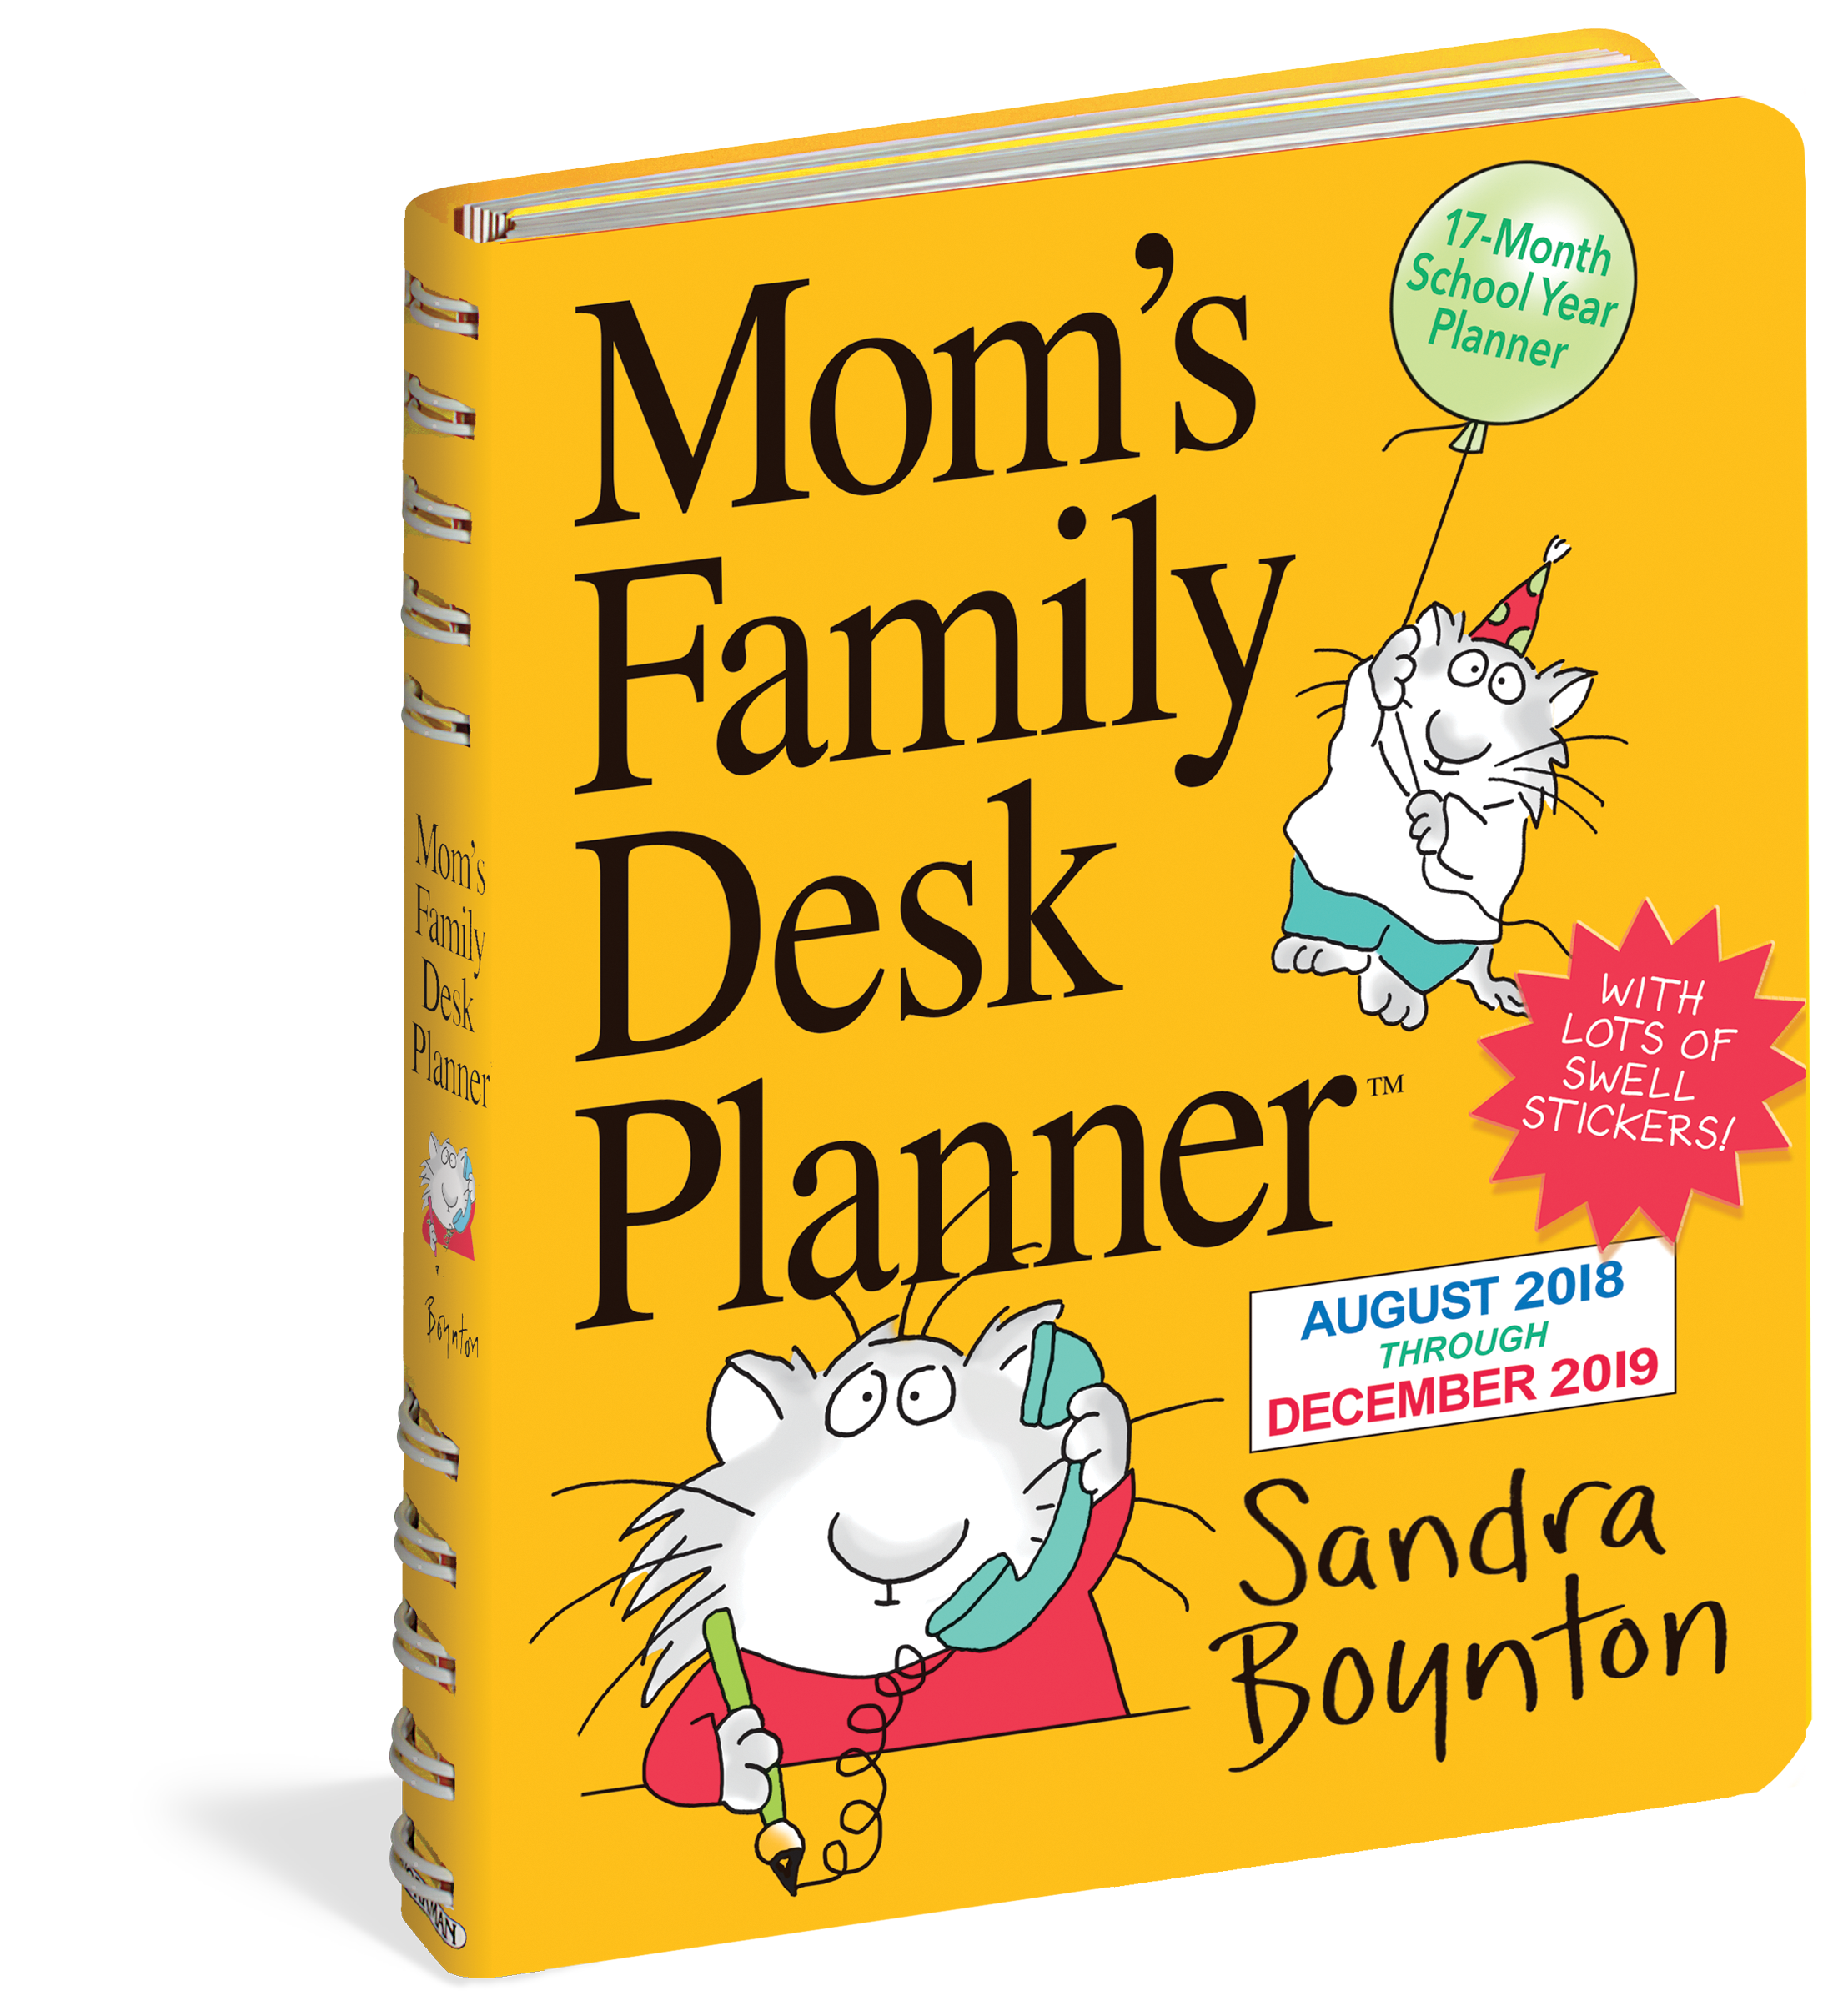 Mom S Family Desk Planner Calendar 2019 Workman Publishing